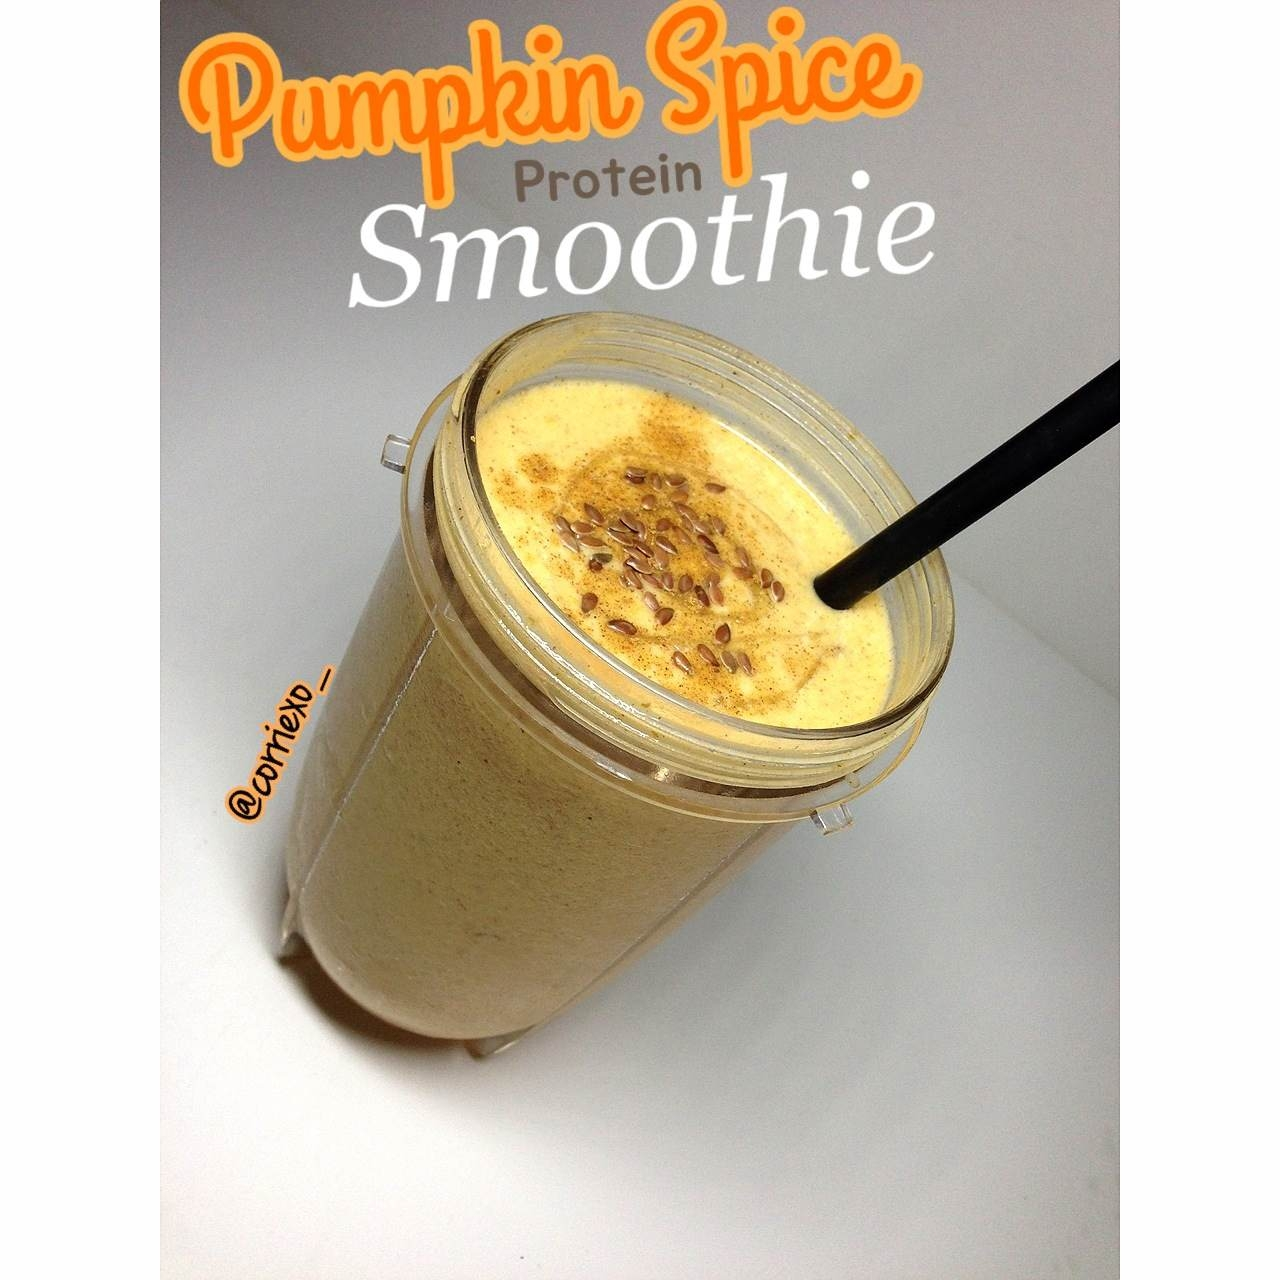 Ripped Recipes - Pumpkin Spice Protein Smoothie